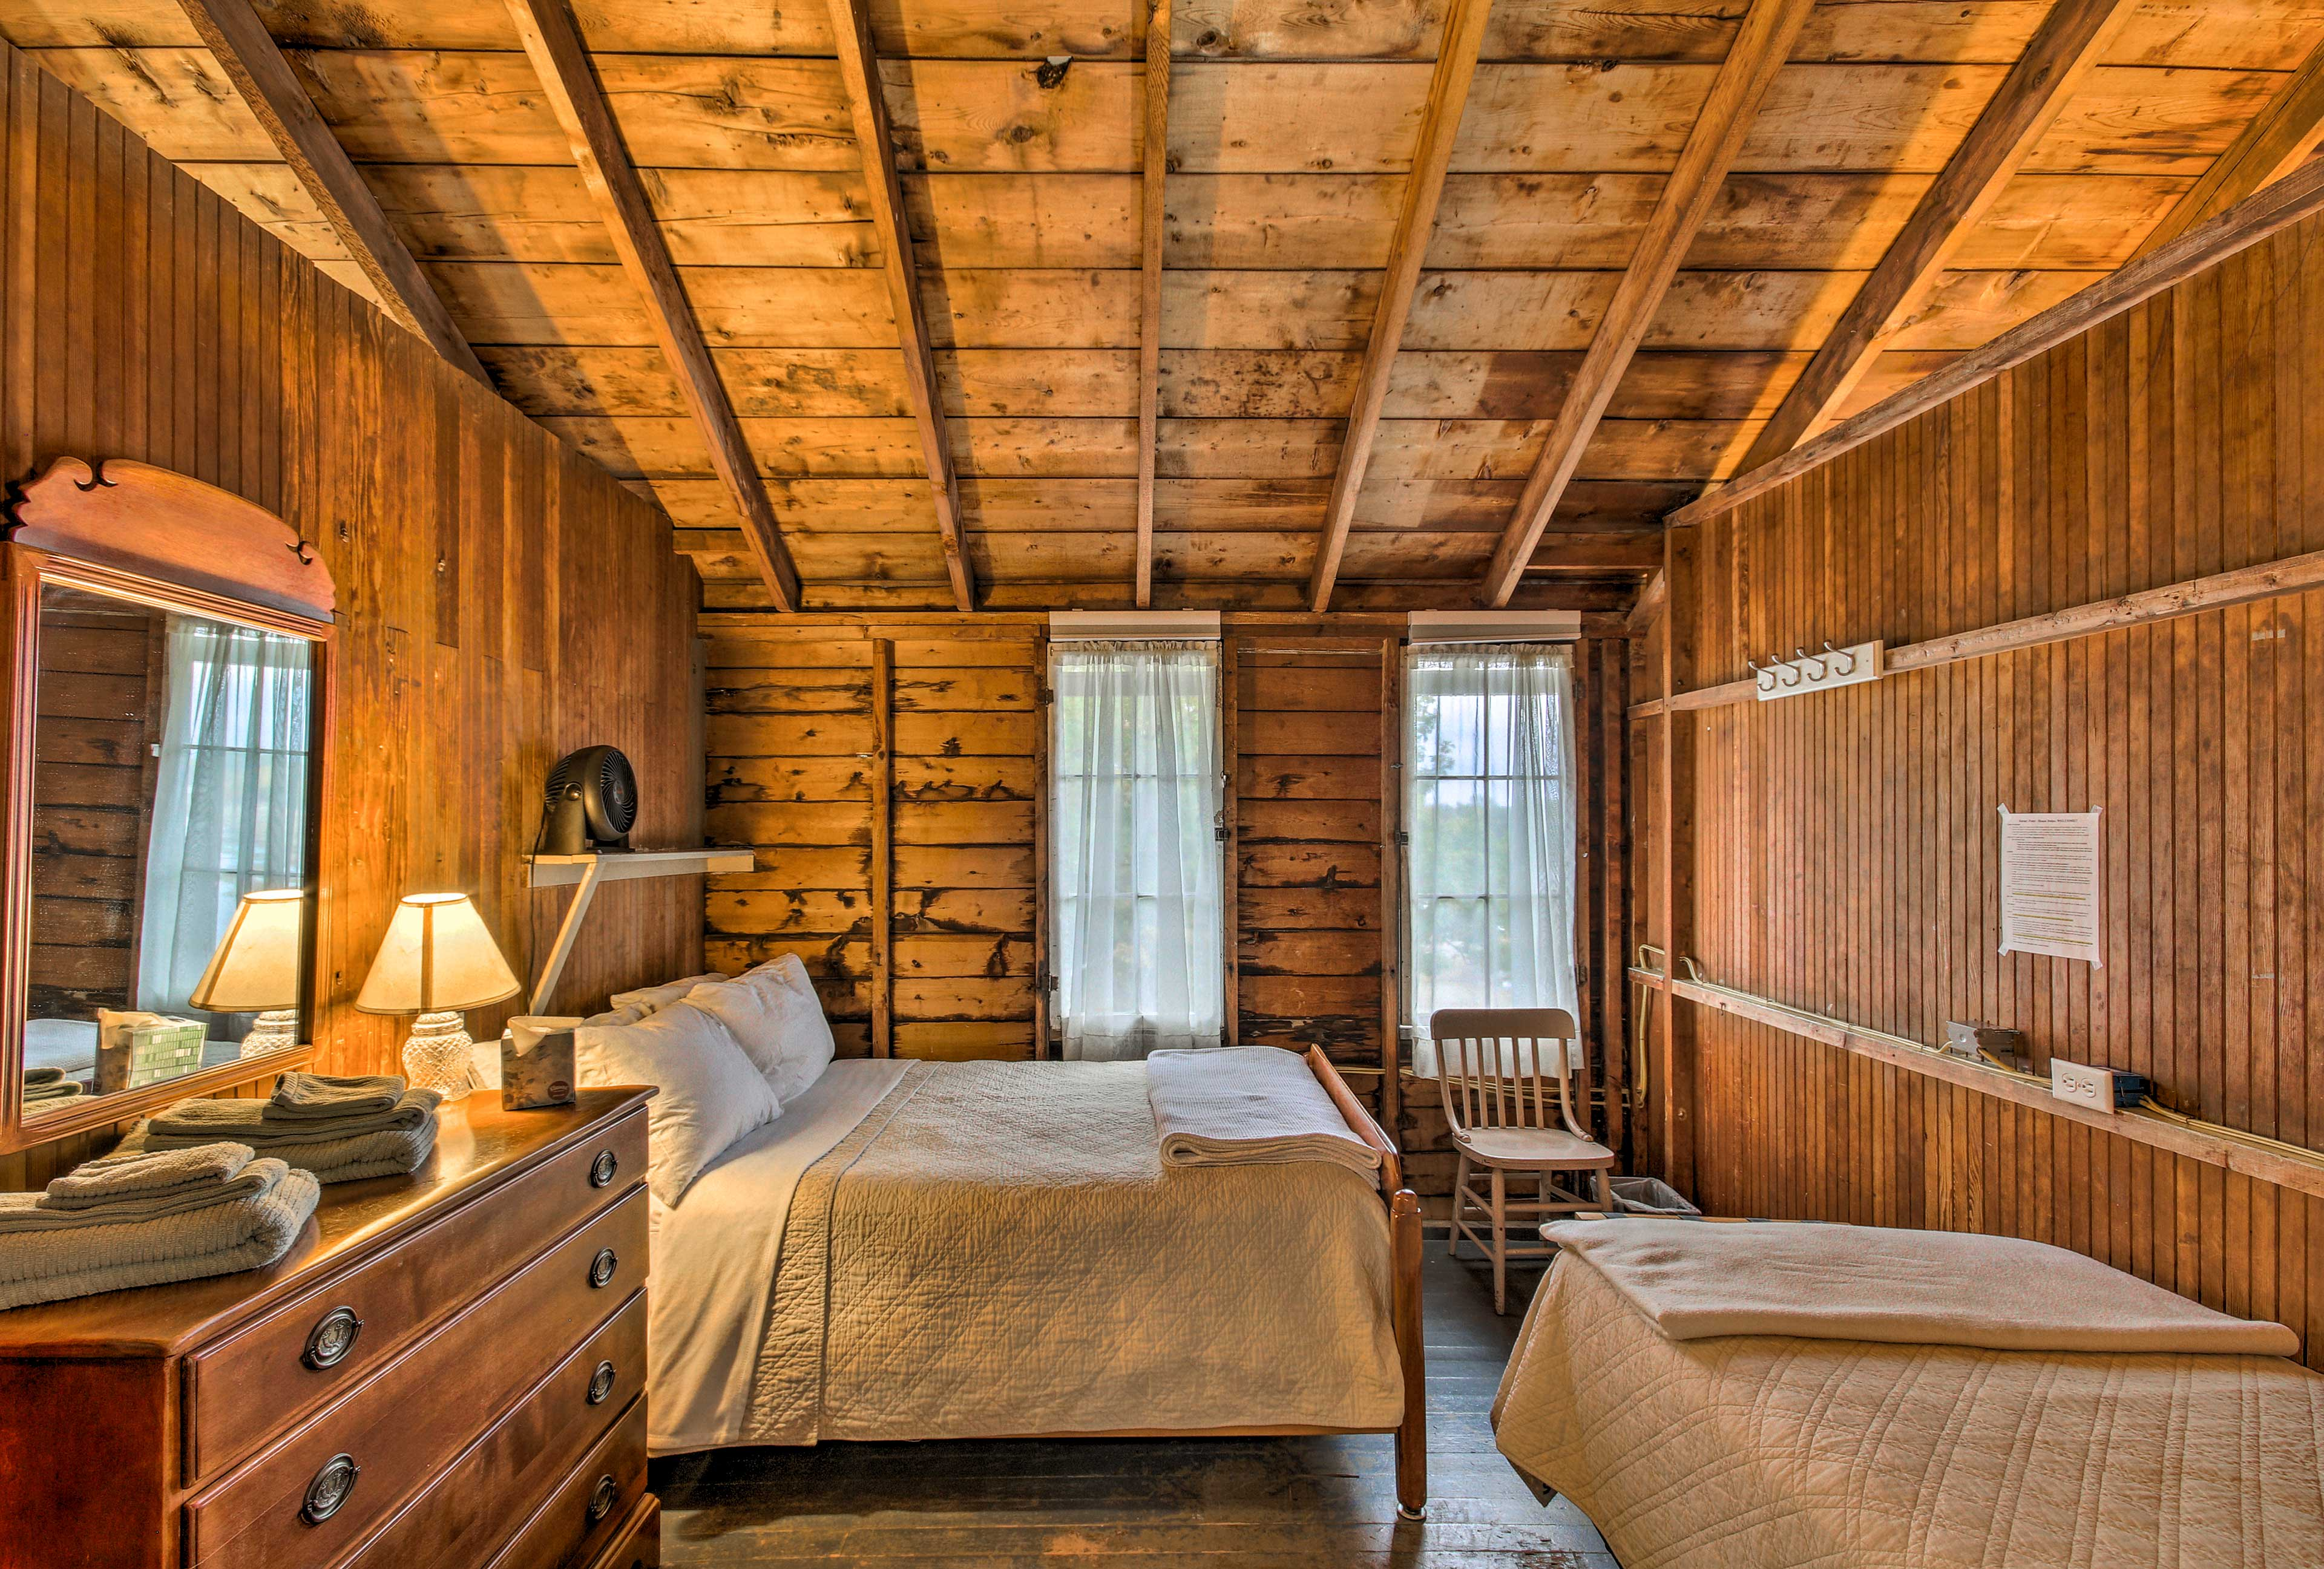 In the 2nd upstairs bedroom, you'll find 1 twin bed & 1 full bed.